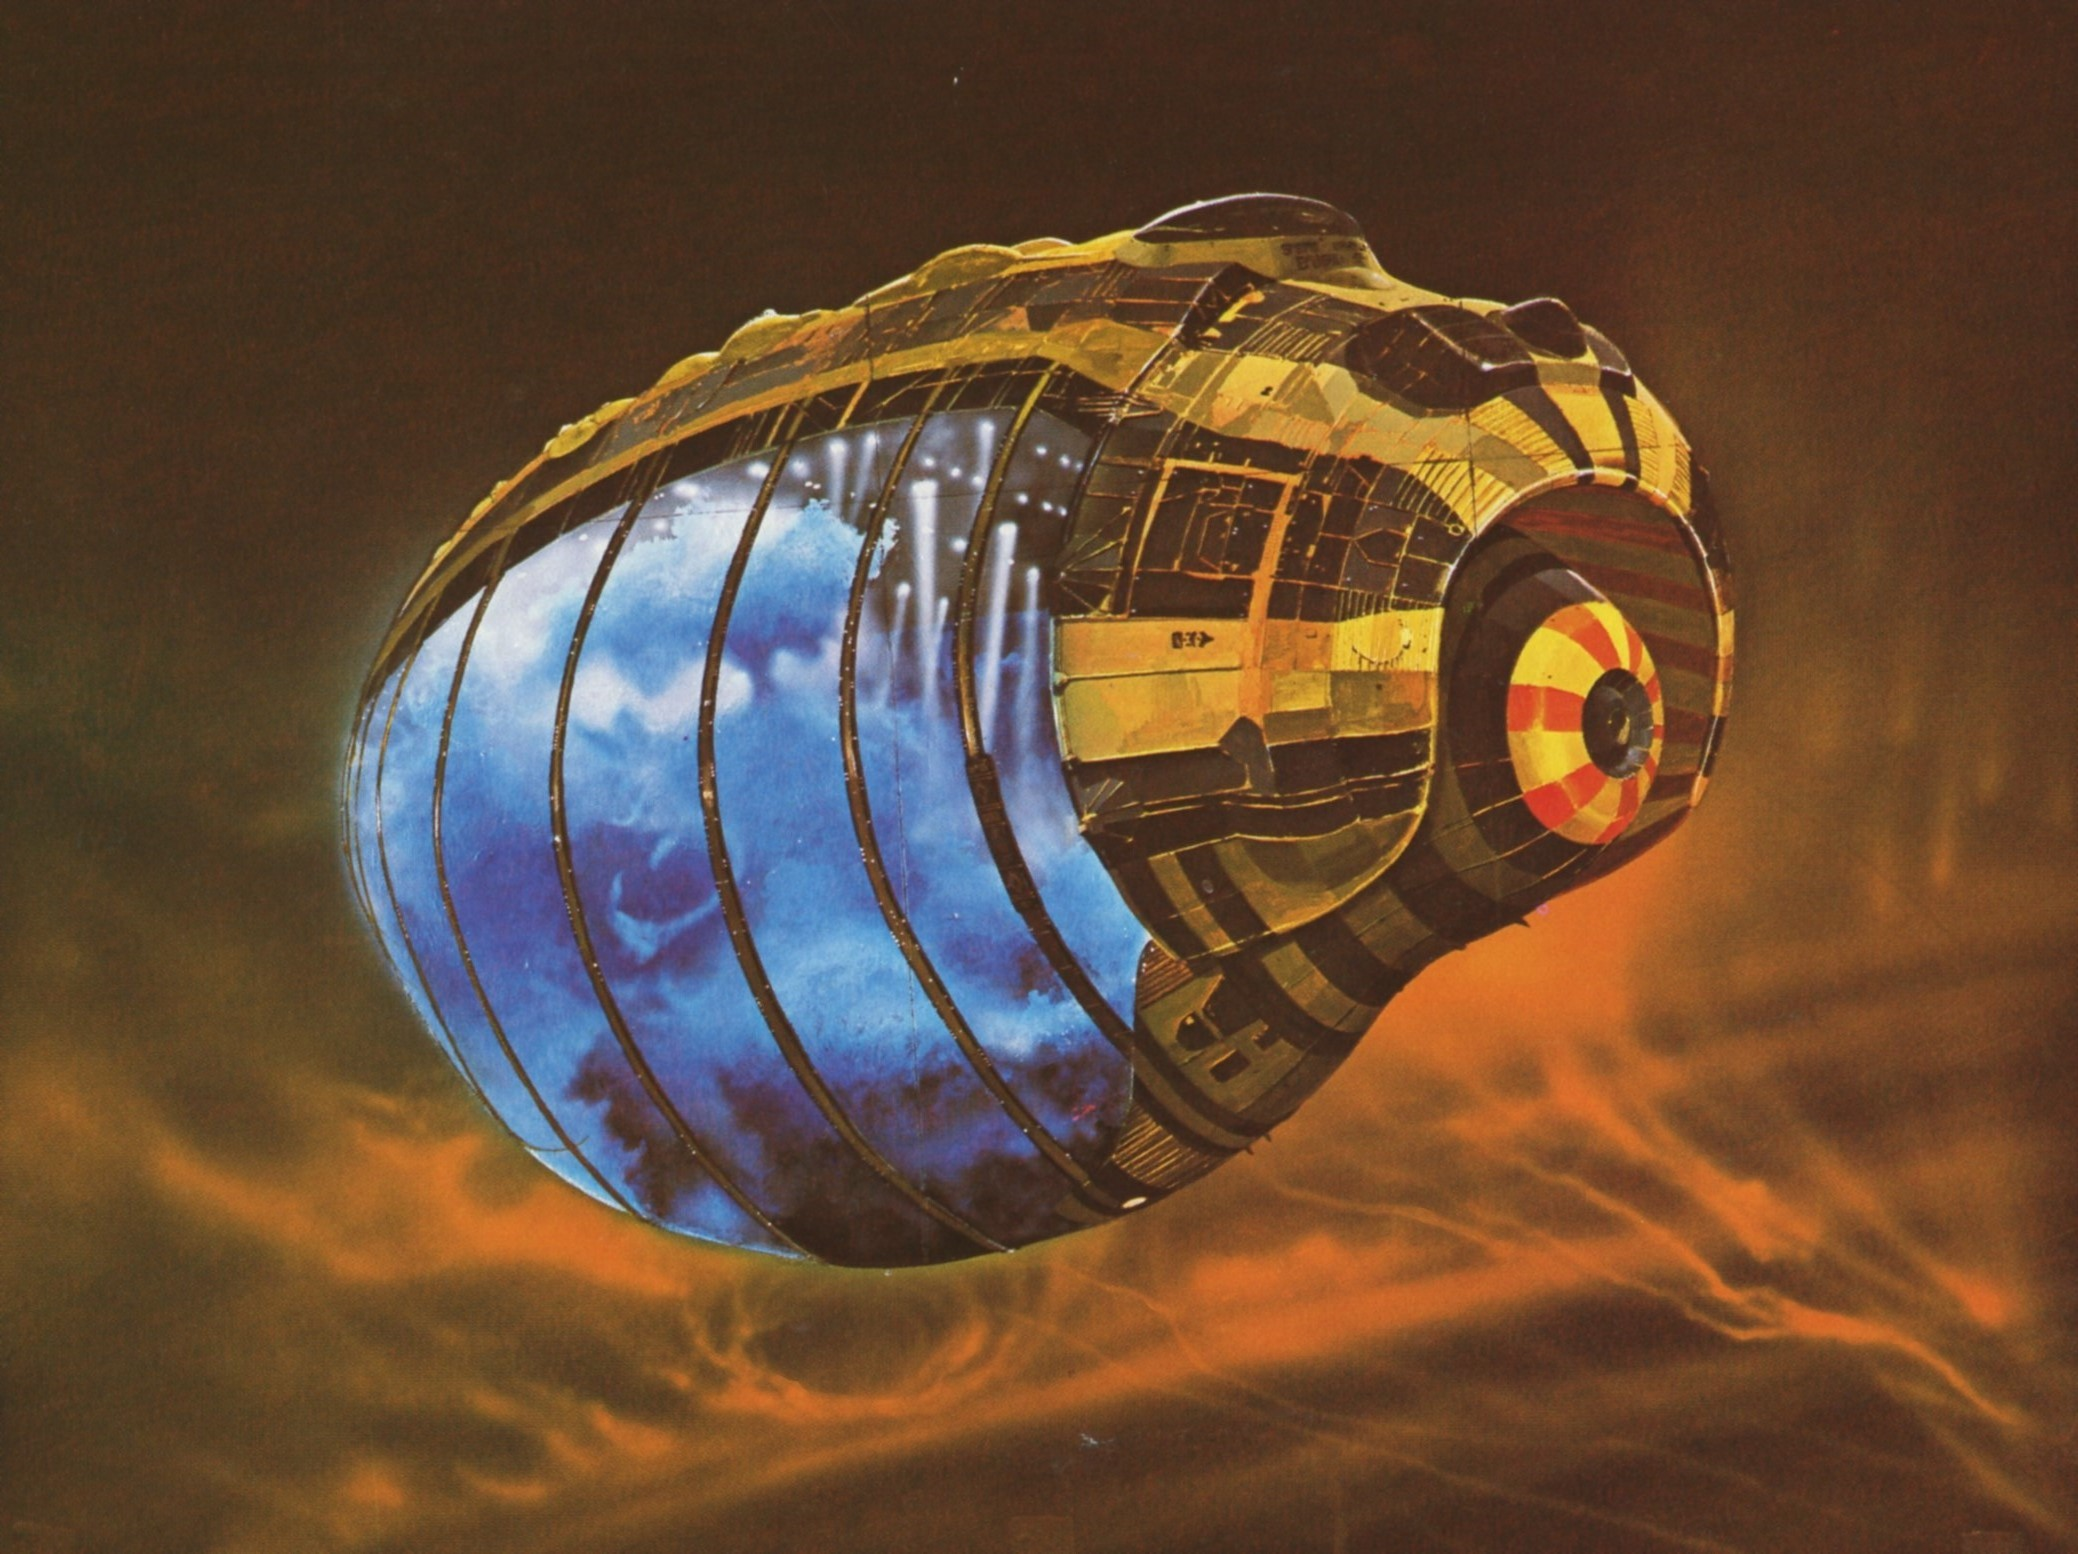 Chris Foss by Jeff Love